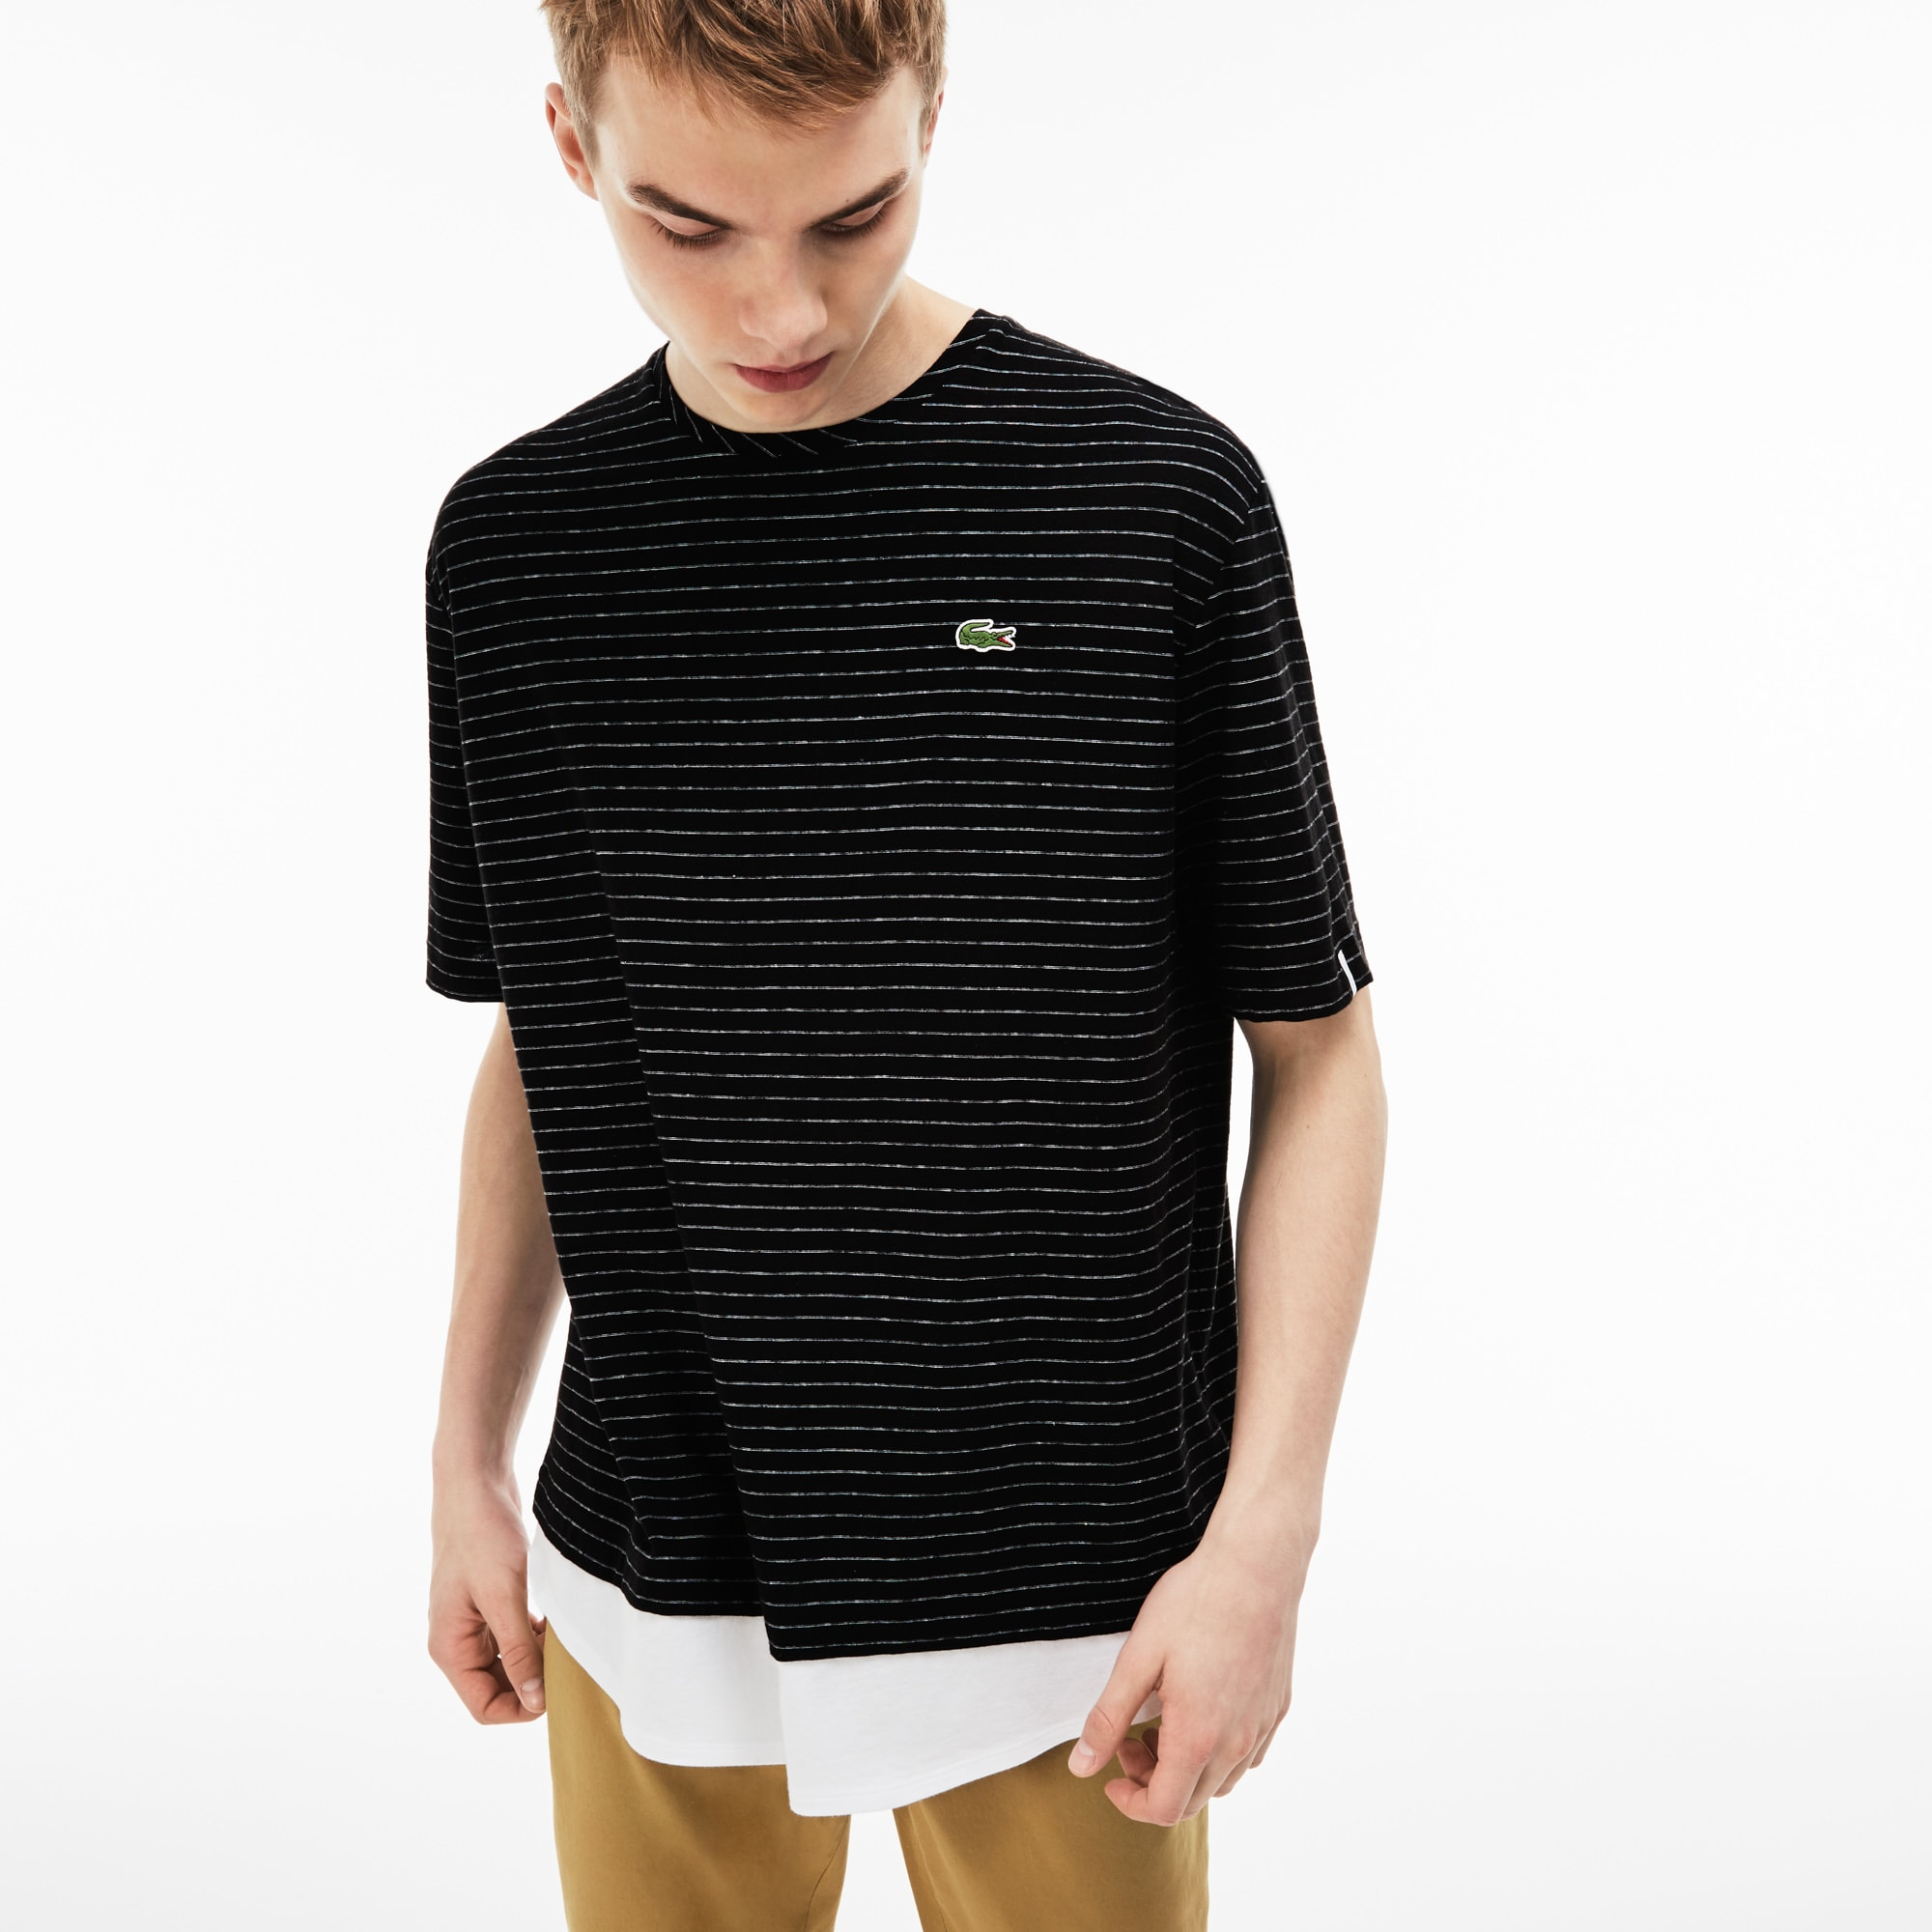 Men's Lacoste LIVE Crew Neck Striped Linen And Cotton Jersey T-shirt